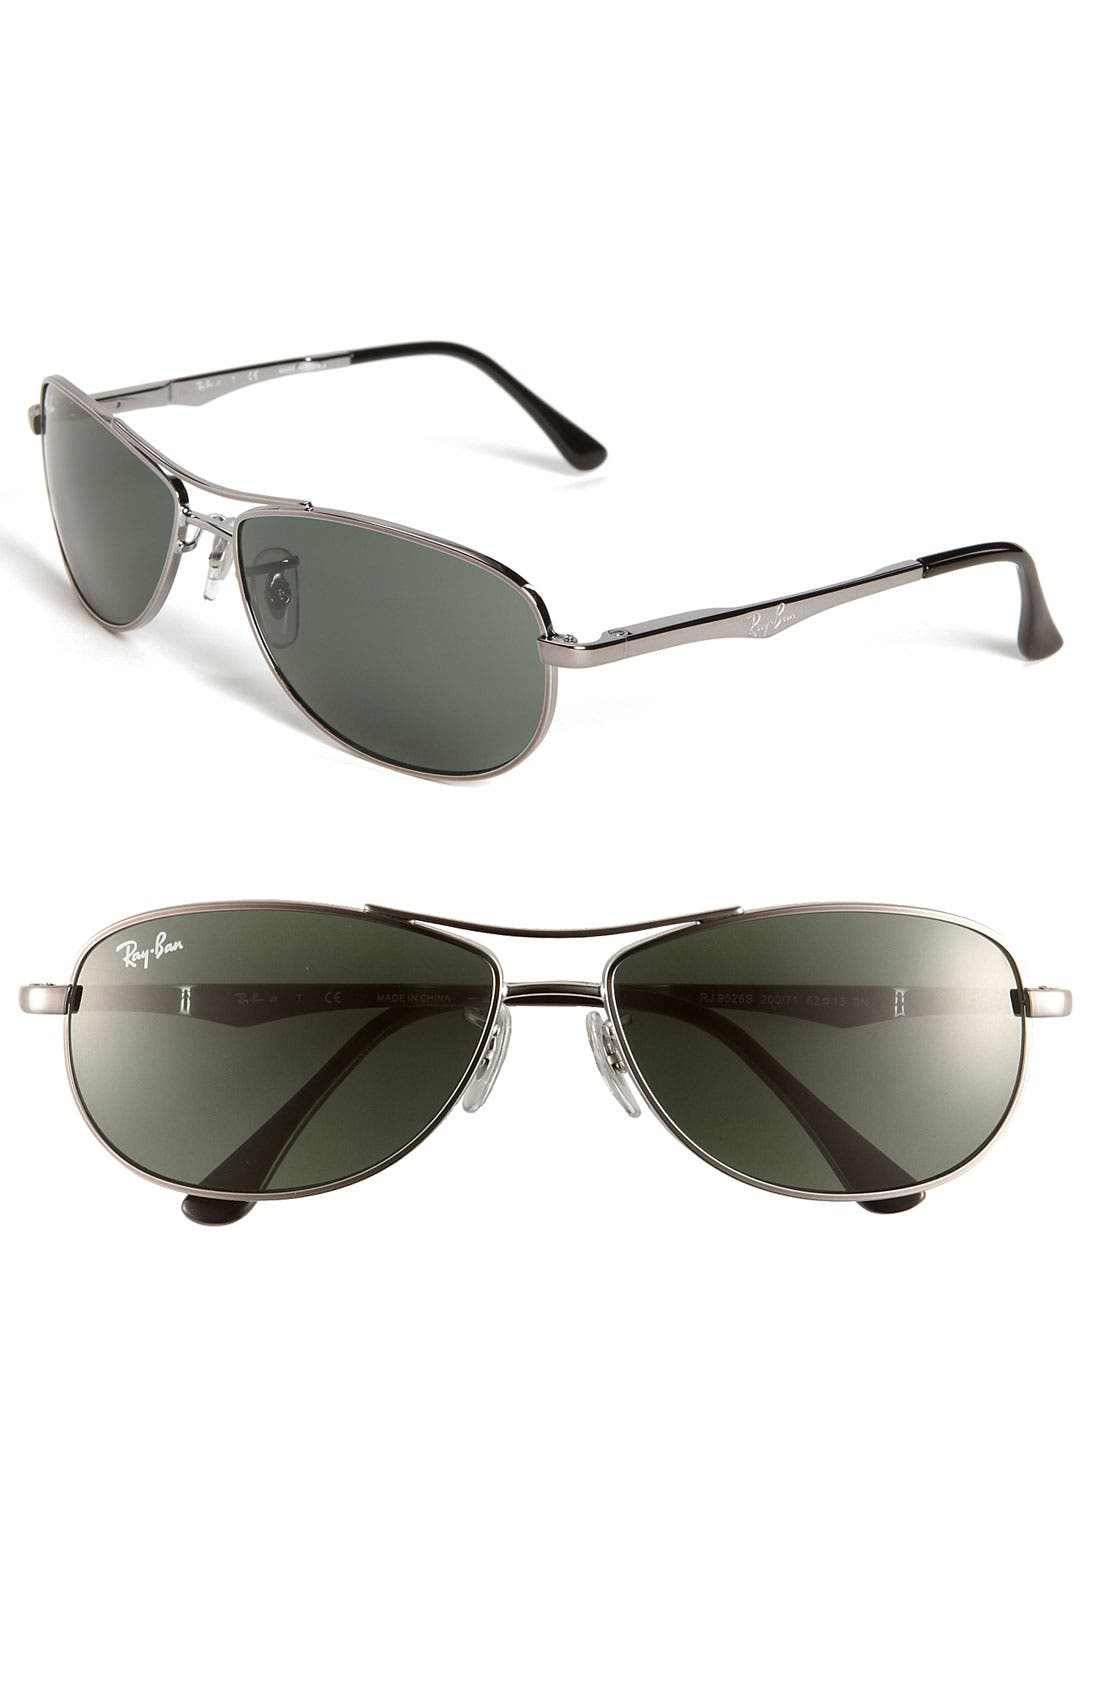 Alternate Image 1 Selected - Ray-Ban 'Morphed' Aviator 52mm Sunglasses (Big Boys)